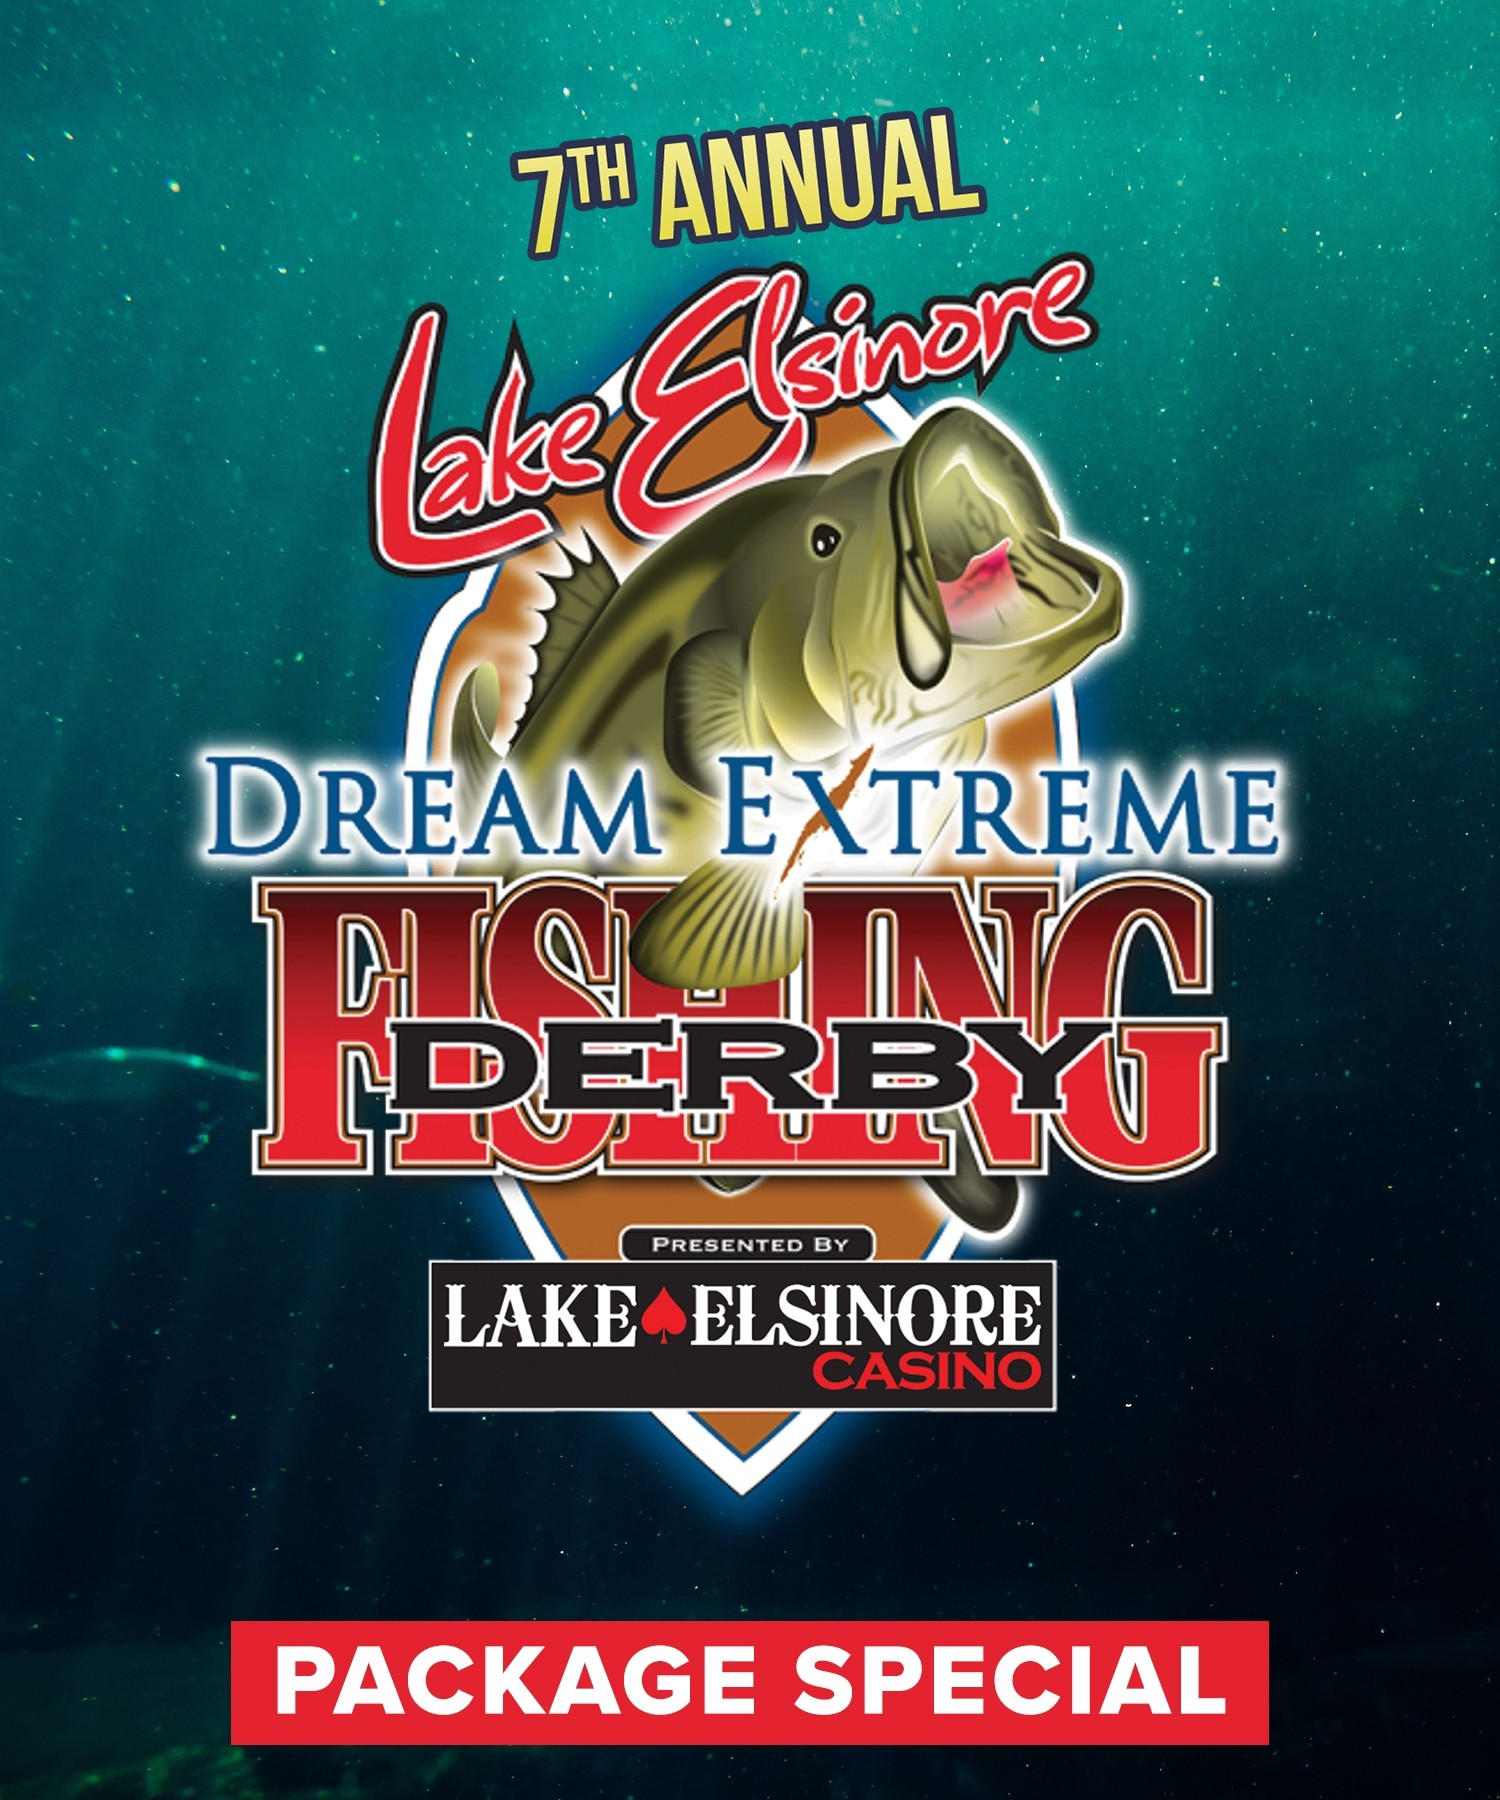 7th Annual Fishing Derby - Package Special